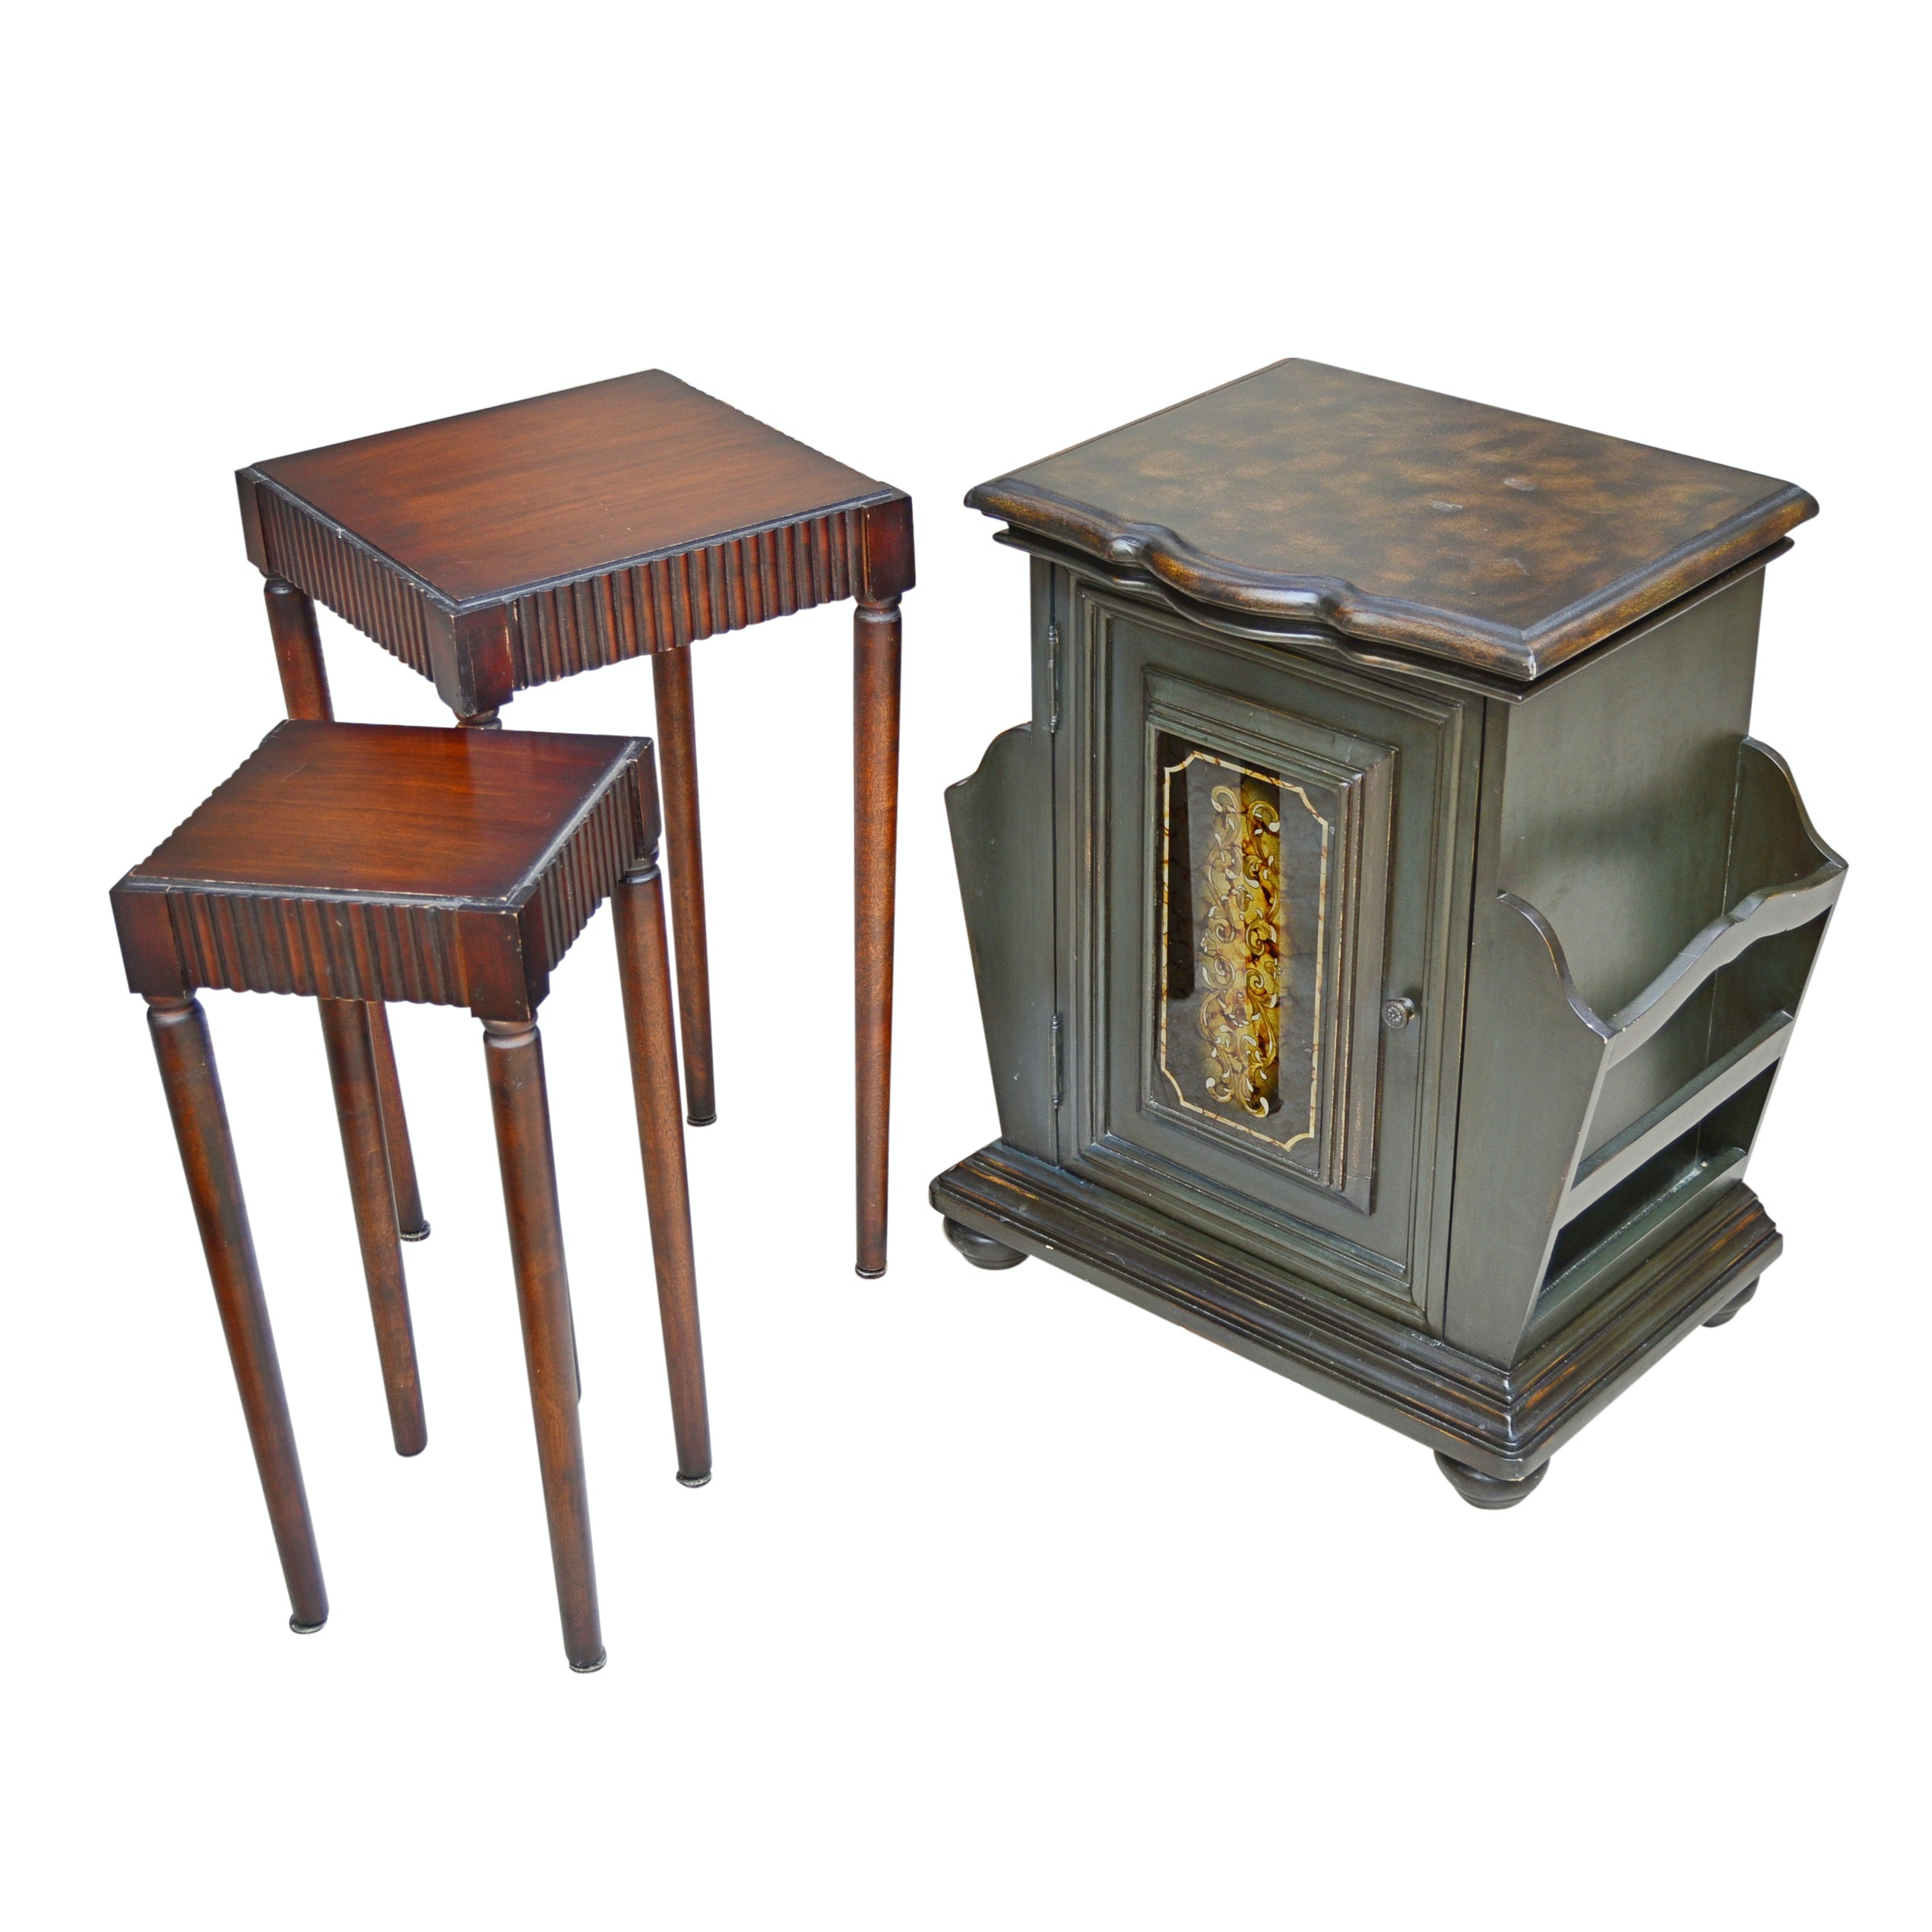 Neoclassic Style Stacking Tables and Victorian Style Magazine Stand